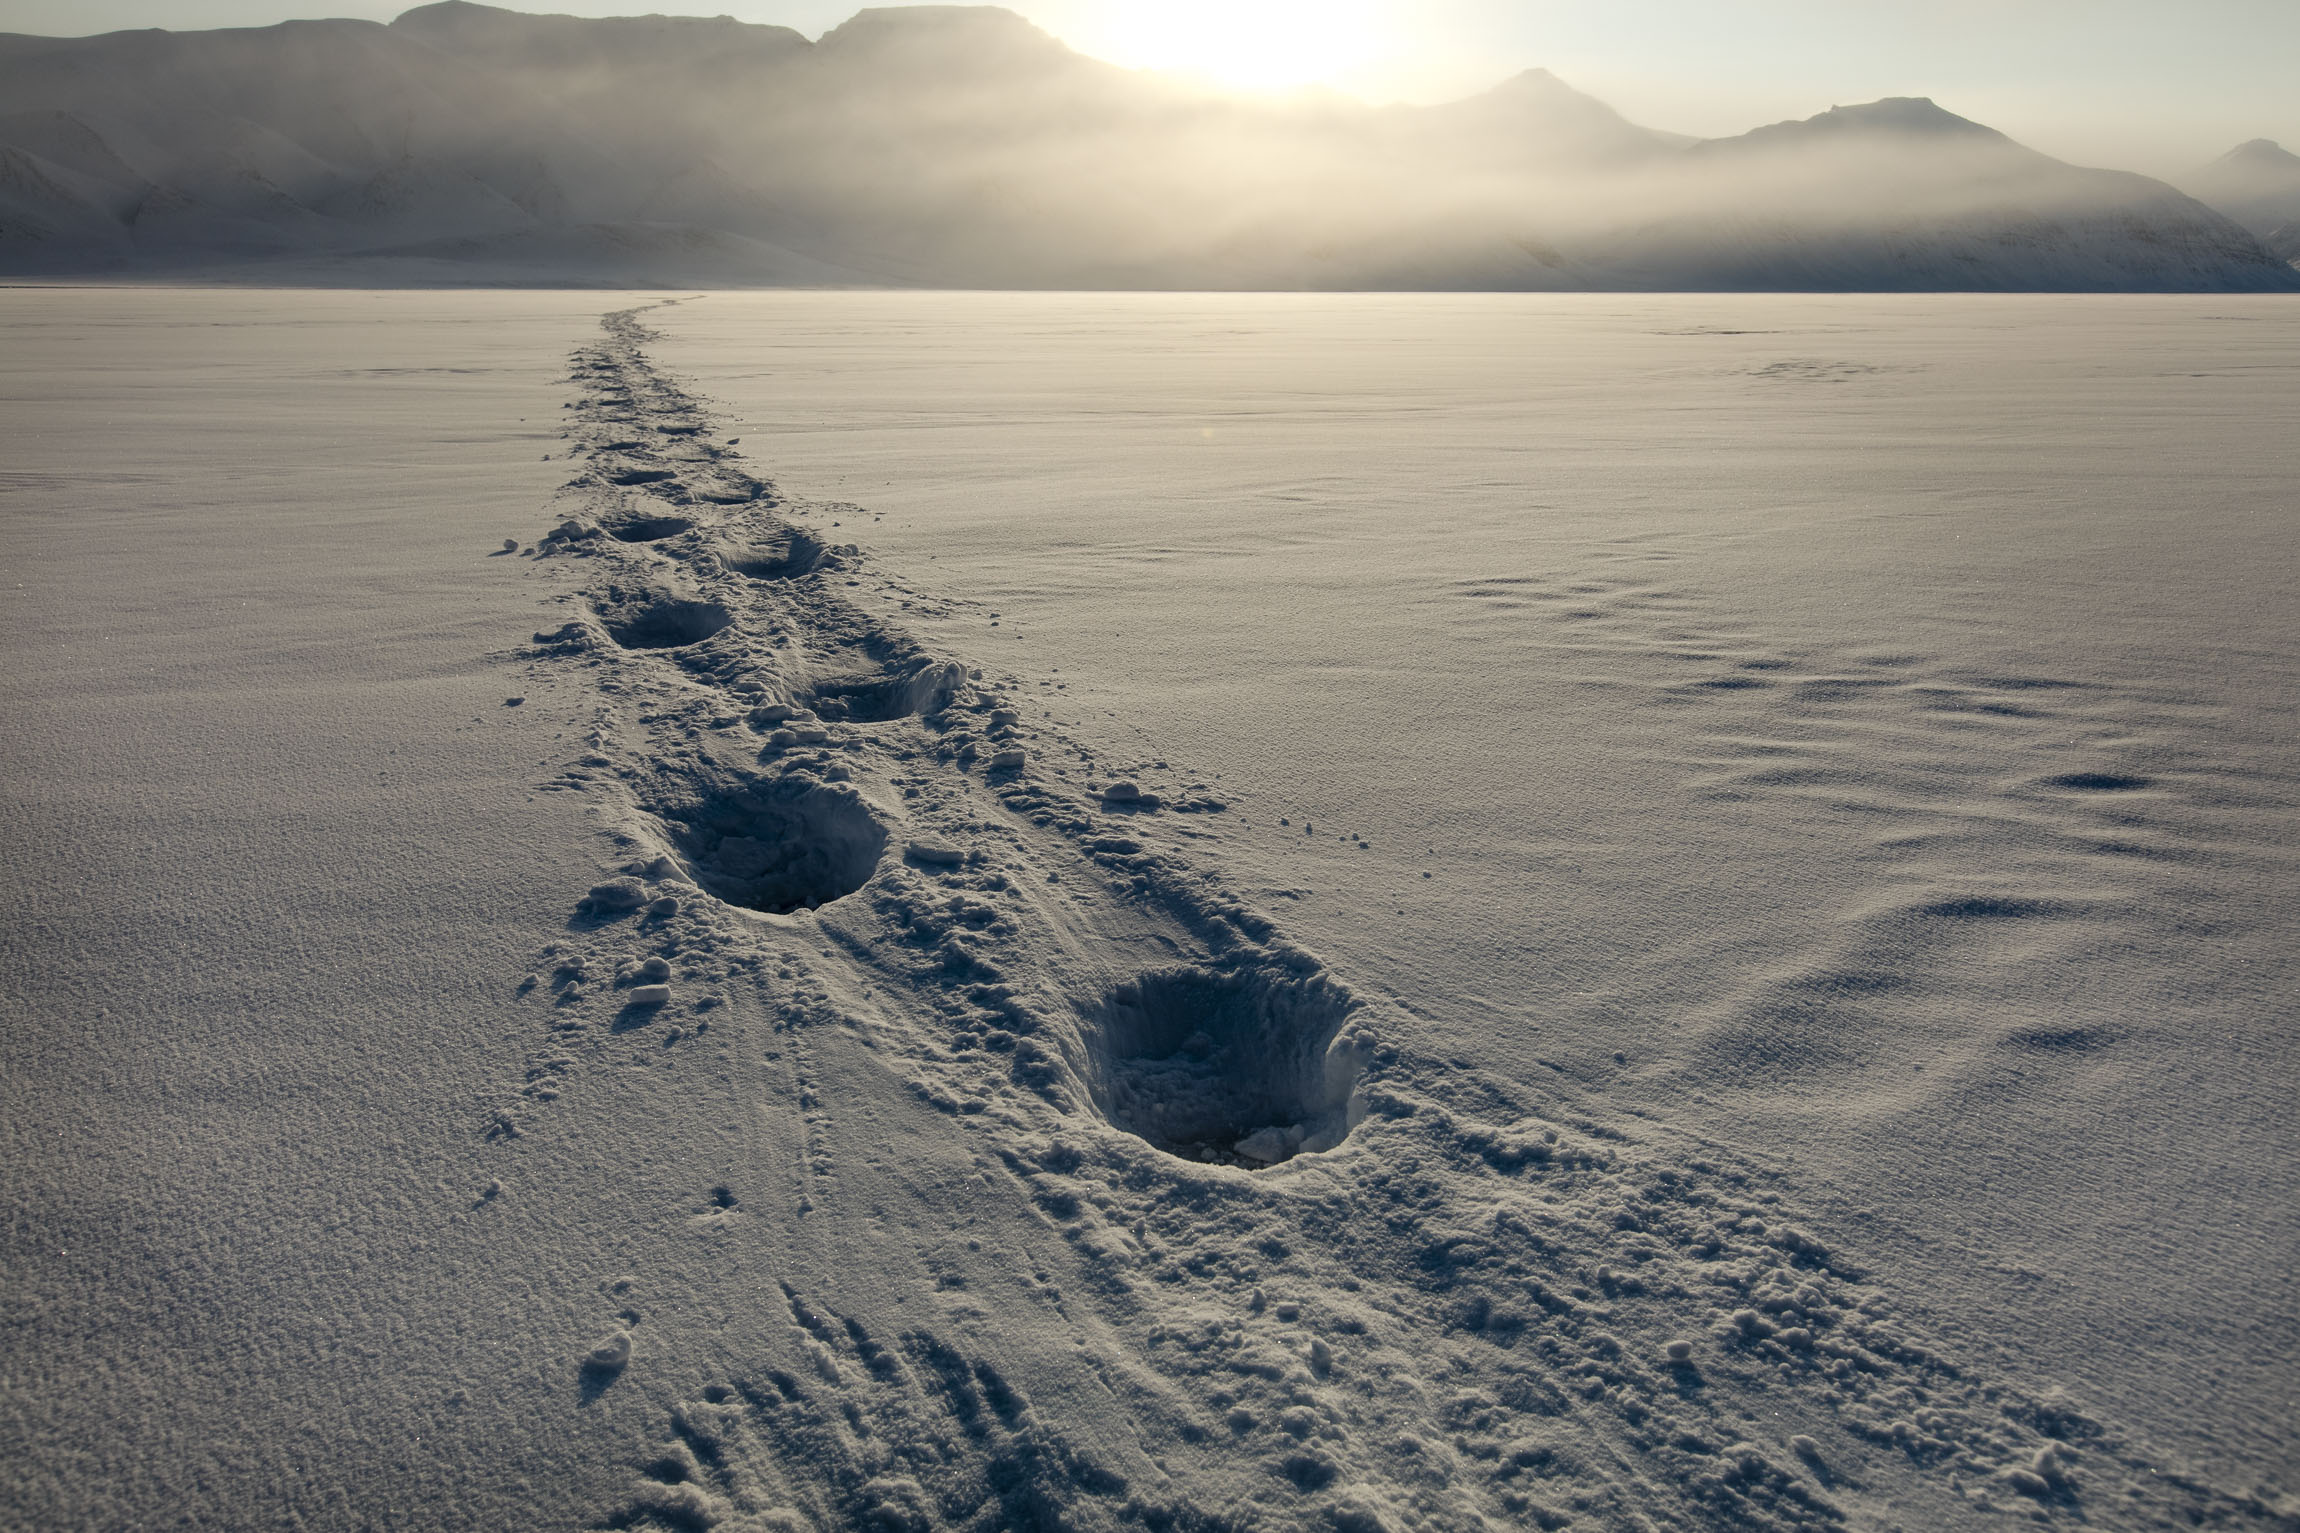 Deep paw prints in snow show the track of a polar bear